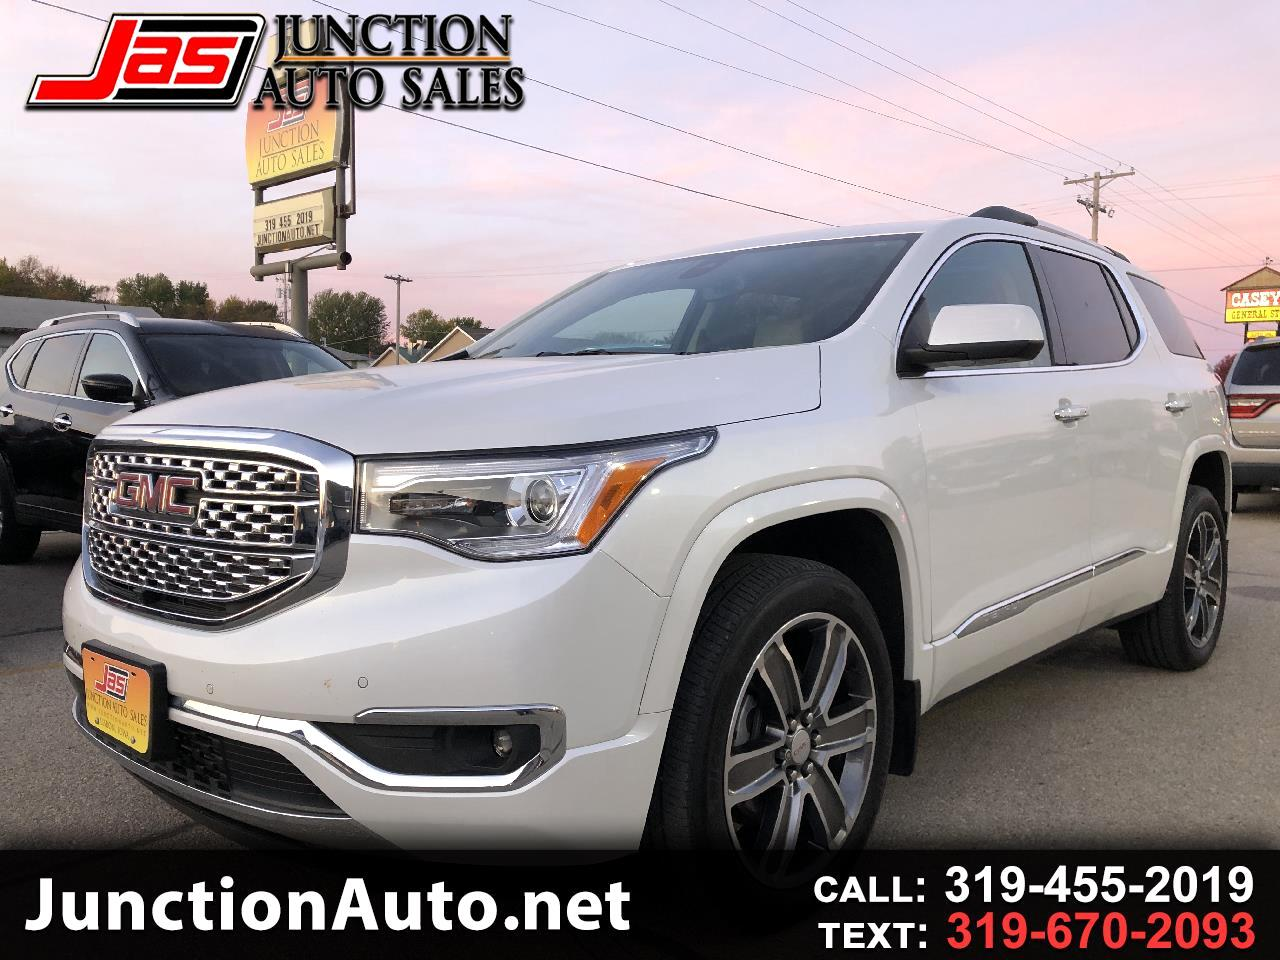 Gmc Acadia Denali For Sale >> Used 2017 Gmc Acadia Denali Awd For Sale In Lisbon Ia 52253